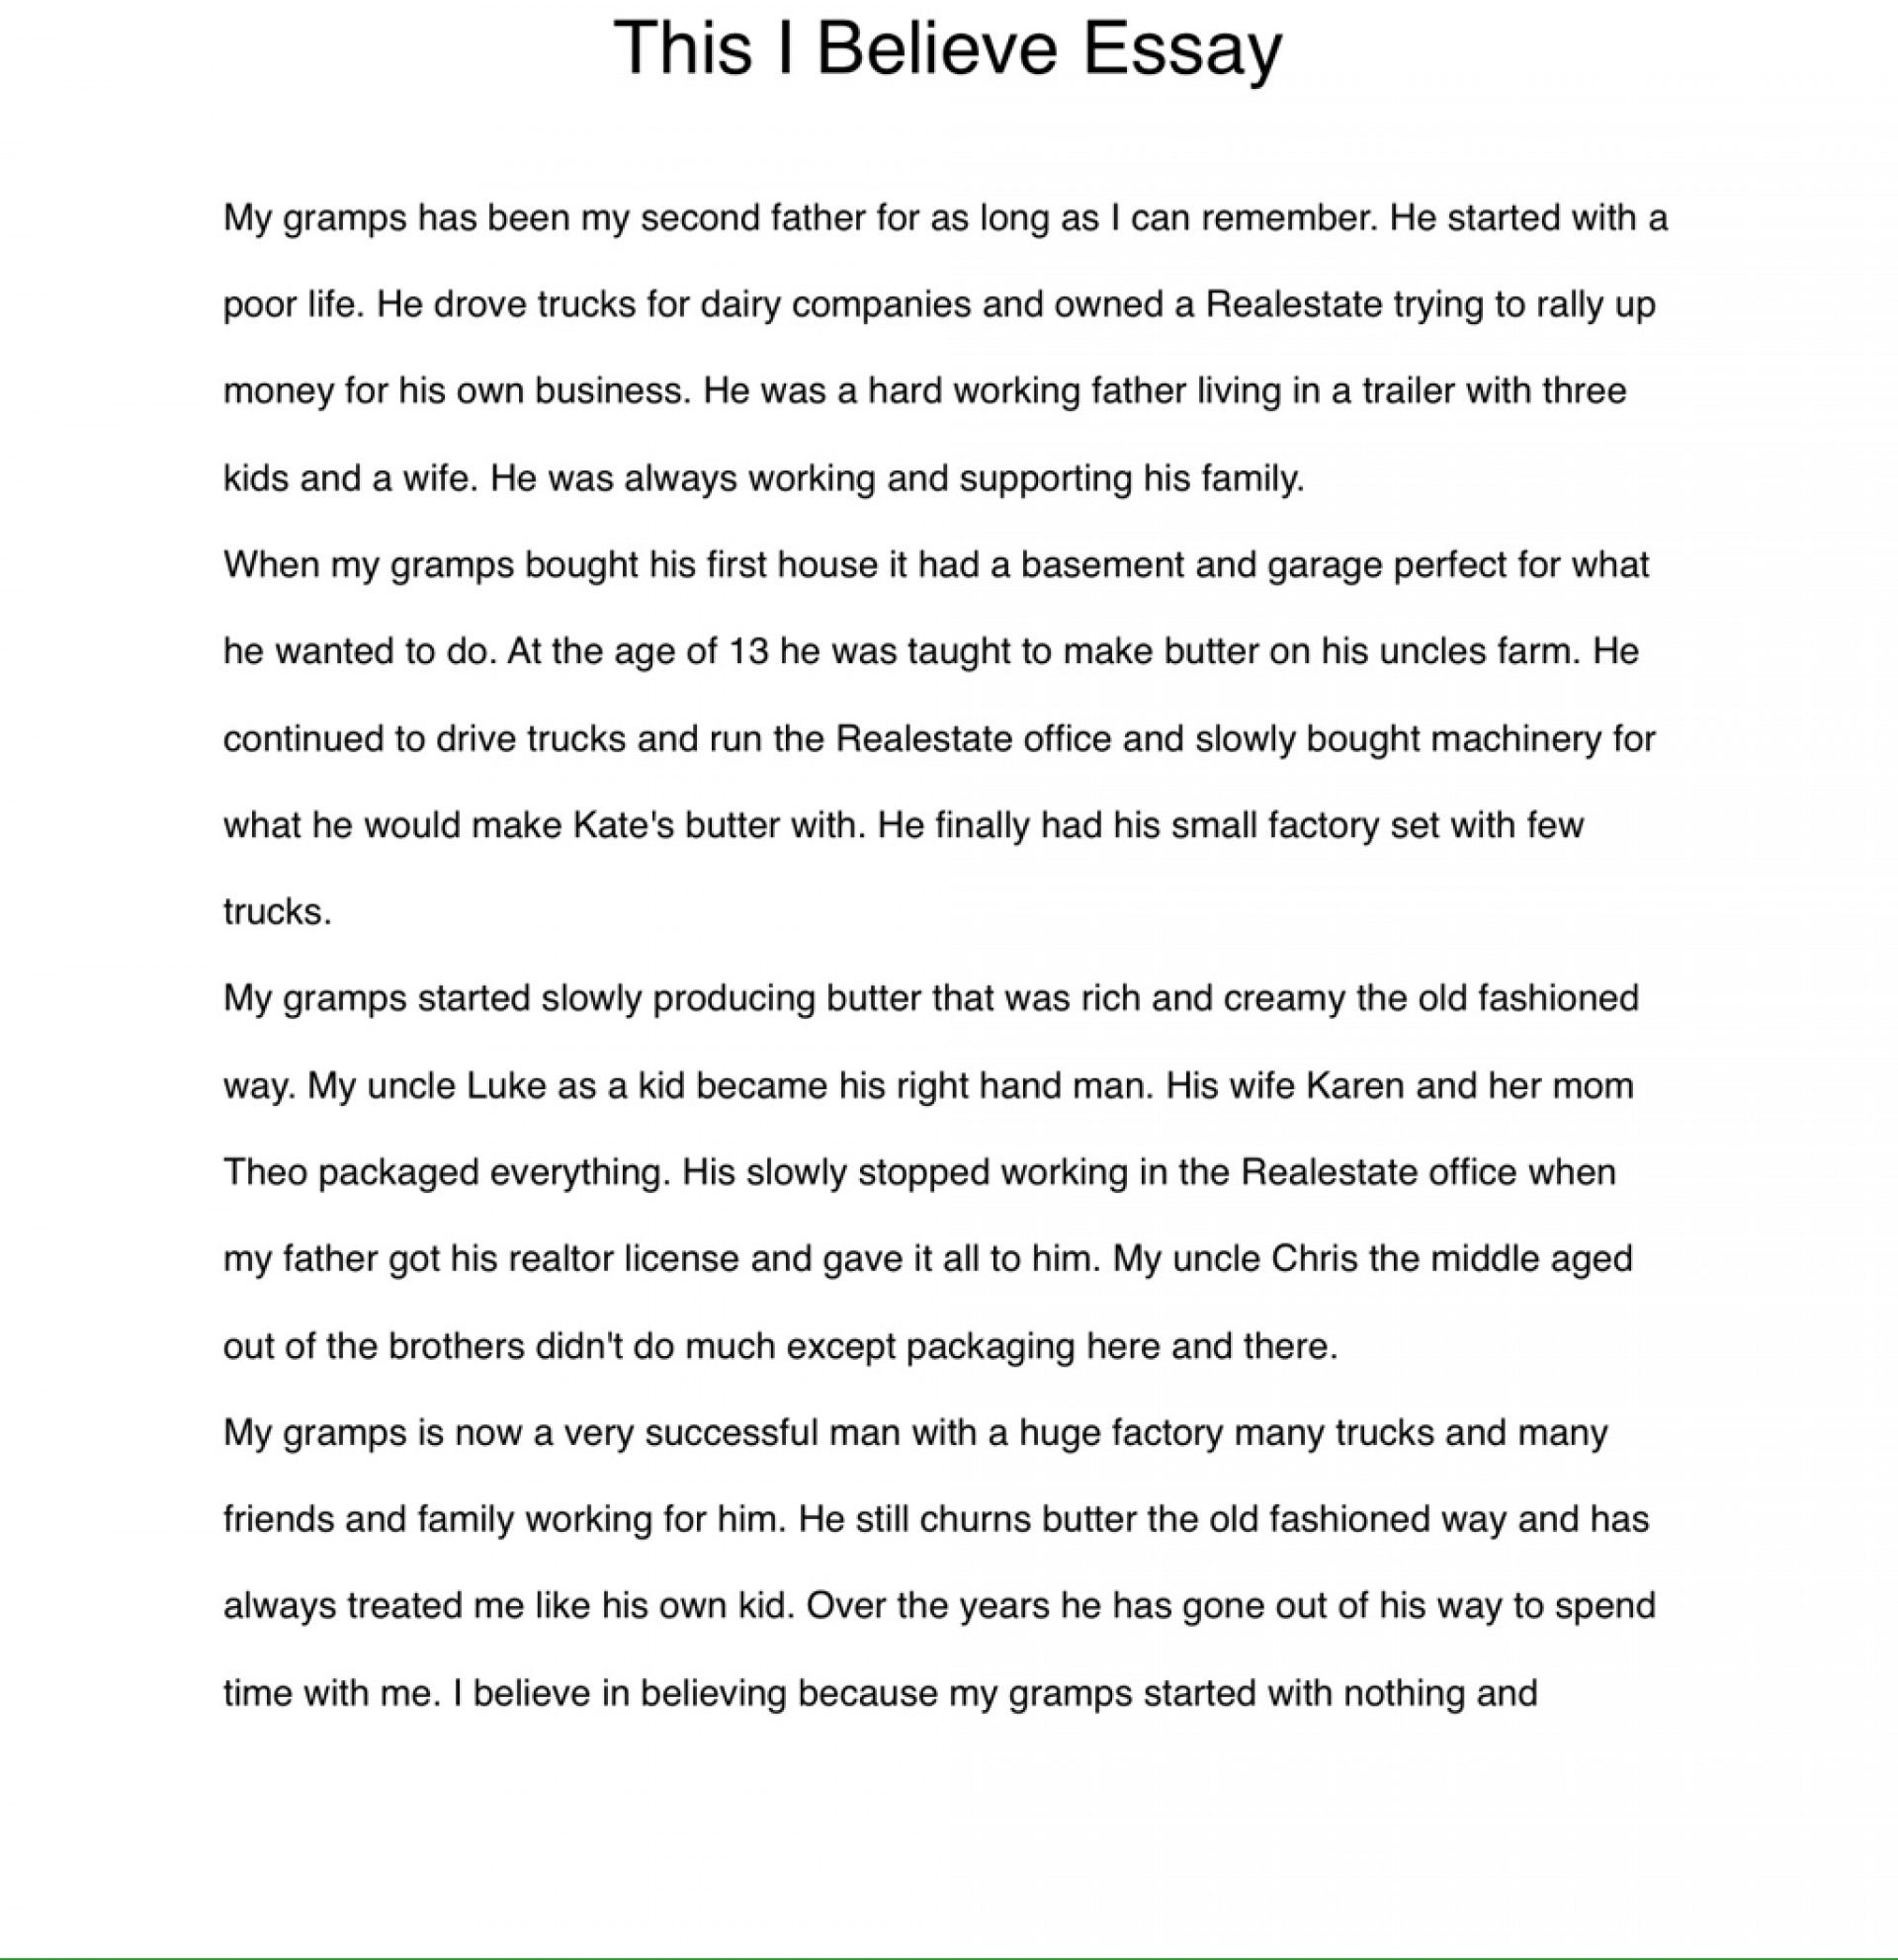 001 This I Believe Essays Professional Resume Templates High School Stunning Essay Example Personal Examples Paper 1920